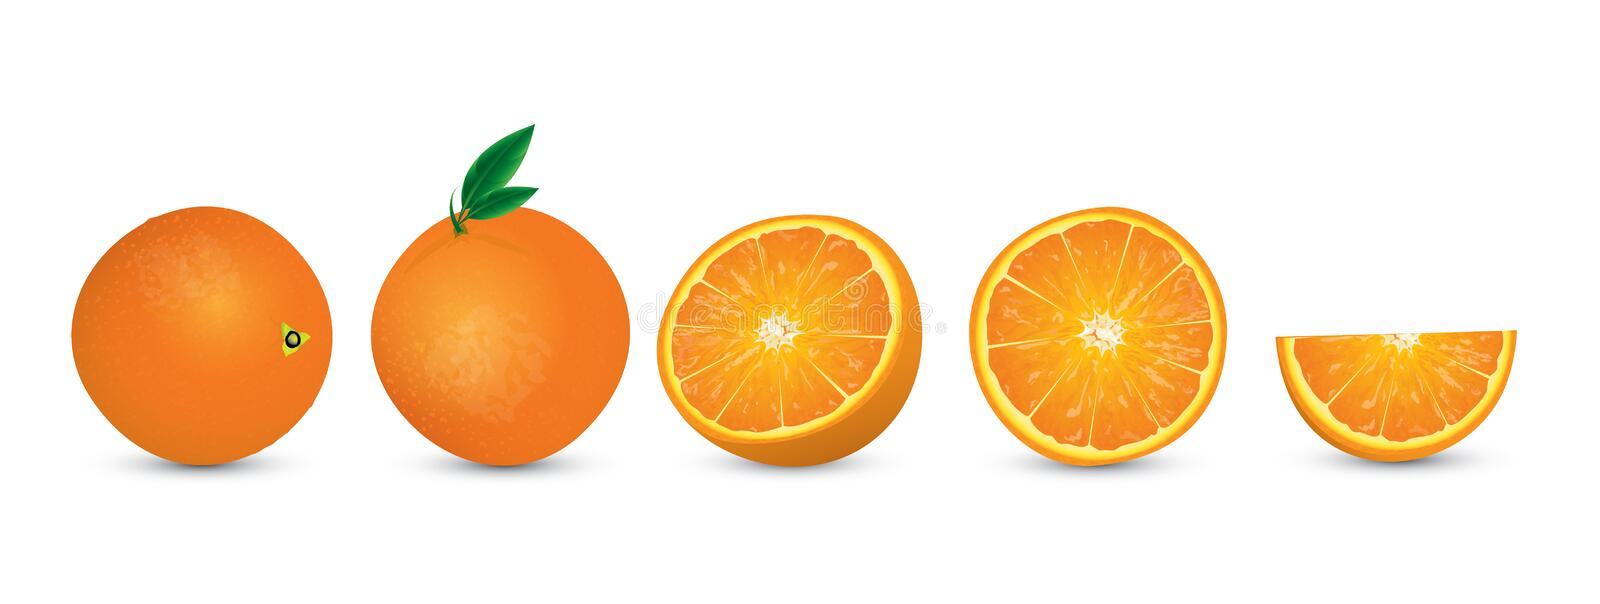 Illustration juteuse d'oranges image stock